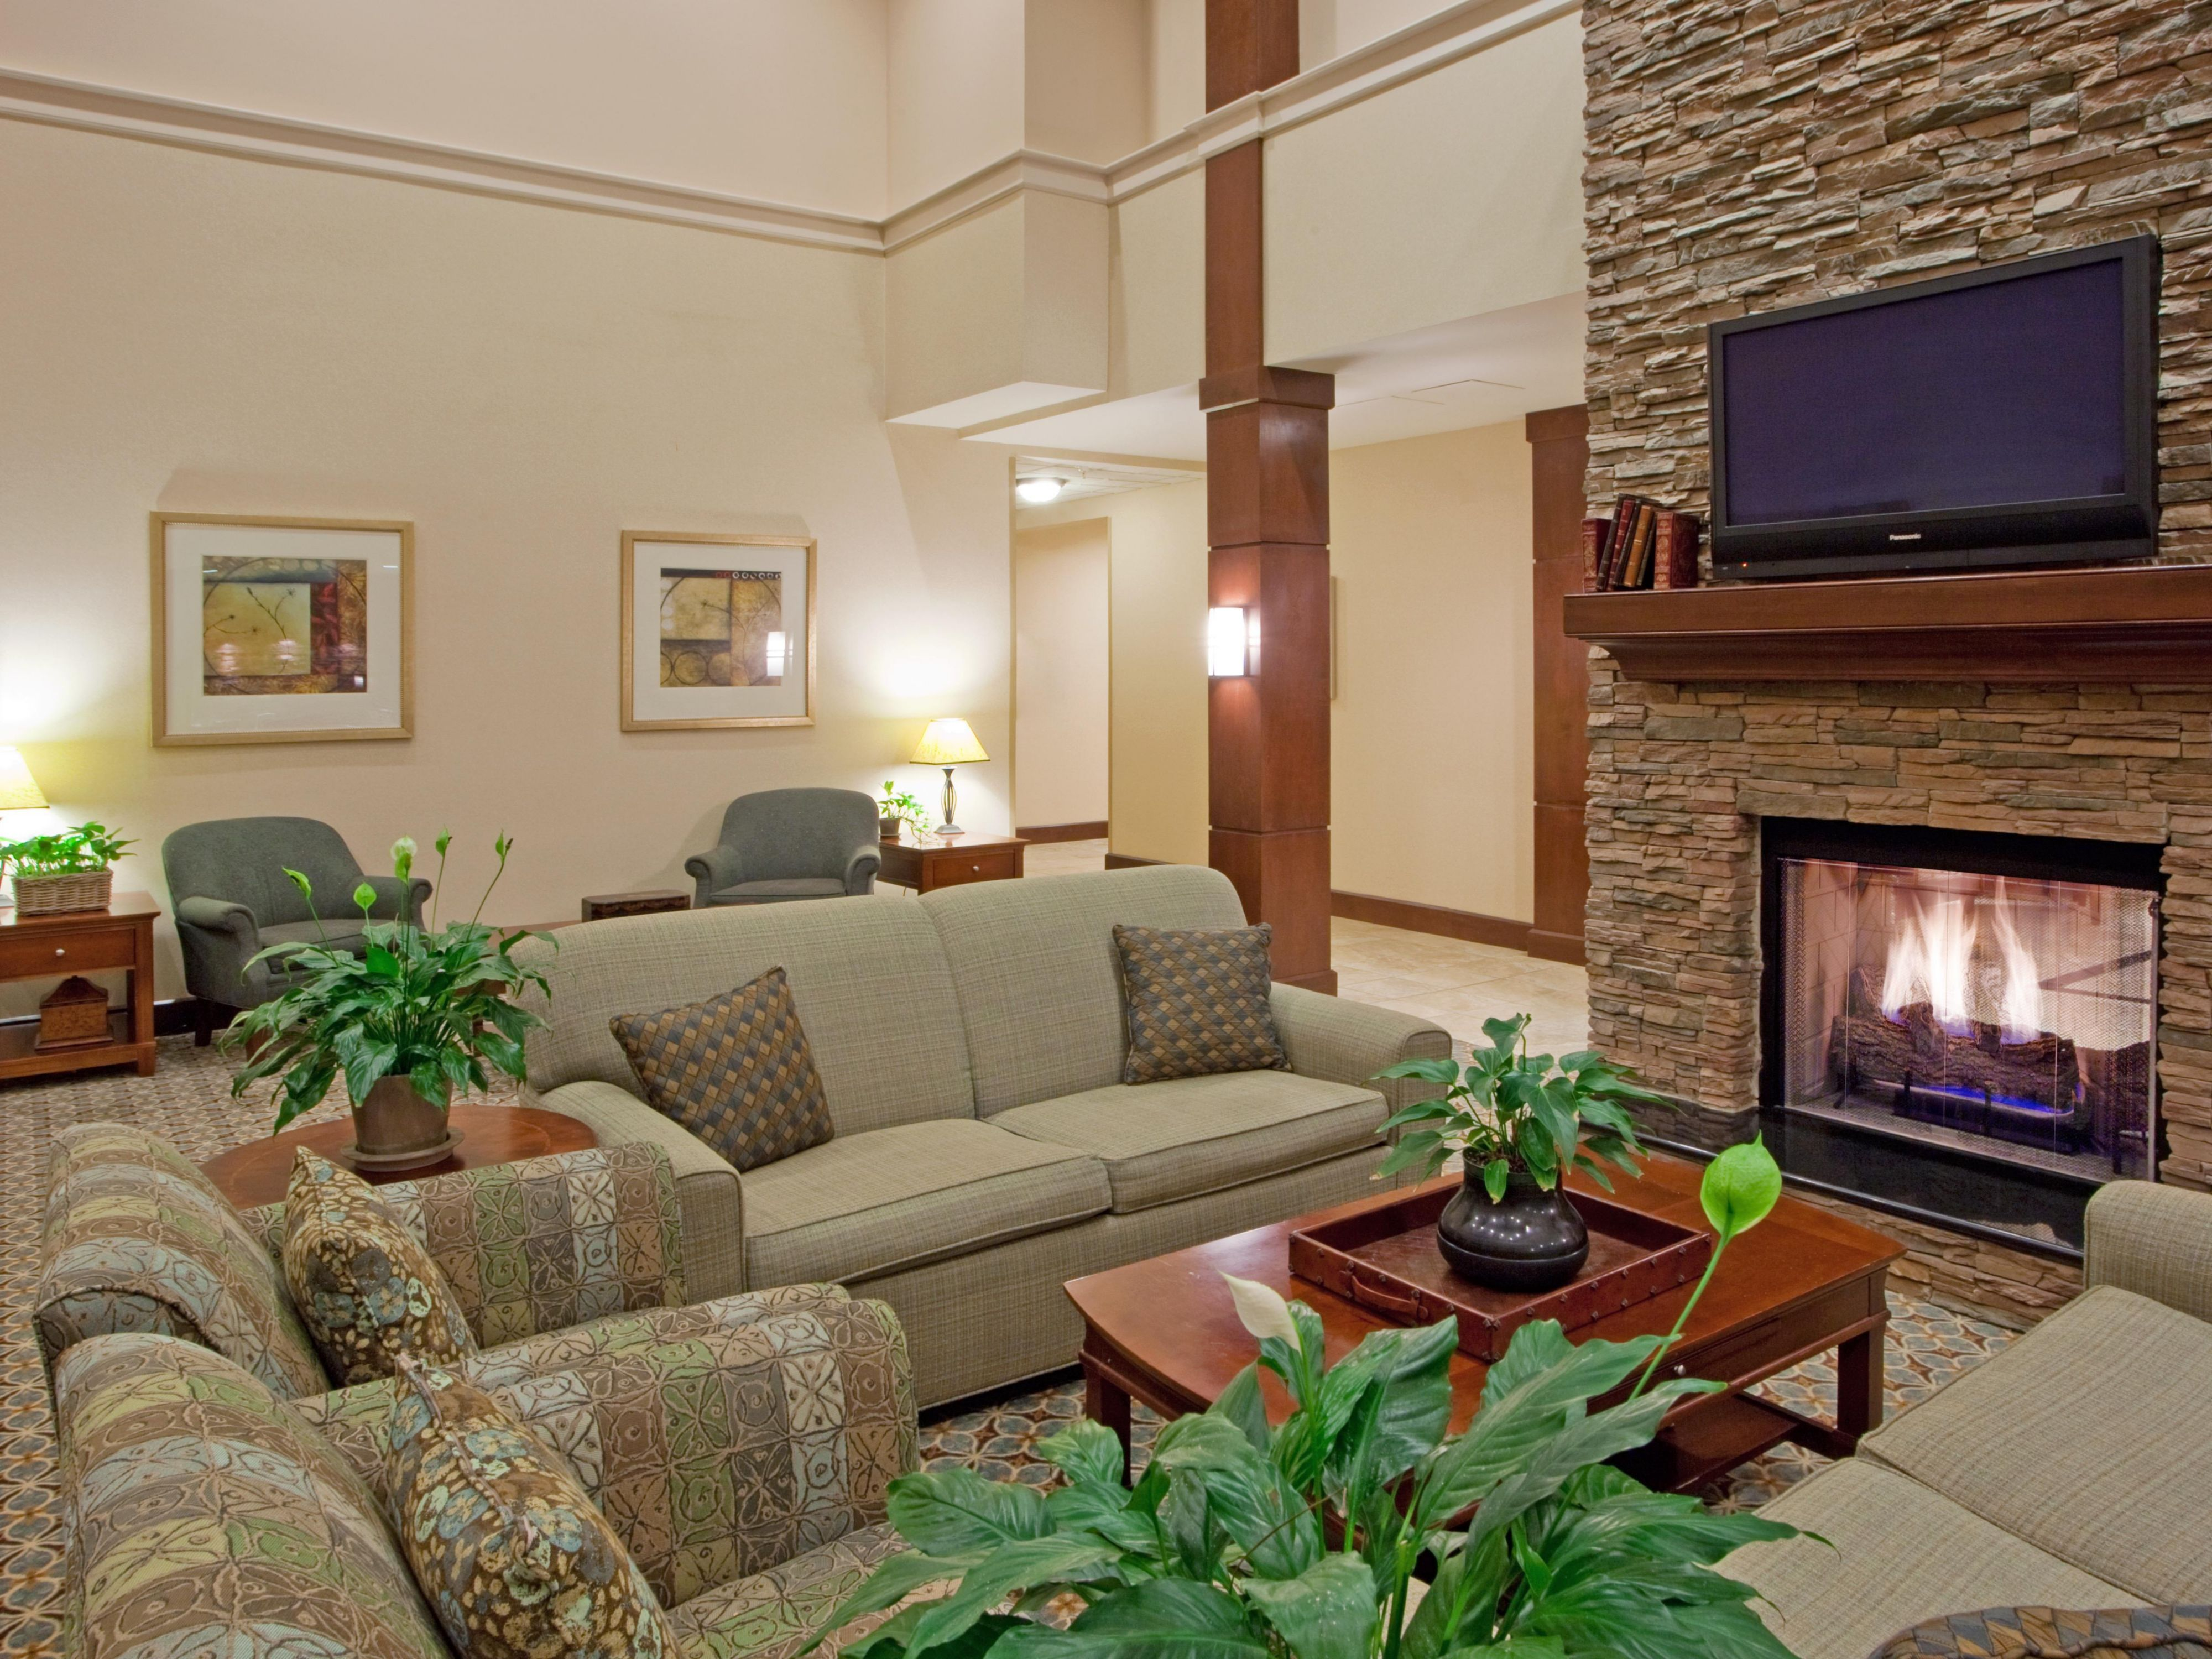 Stafford Hotels: Staybridge Suites Quantico-Stafford - Extended Stay ...